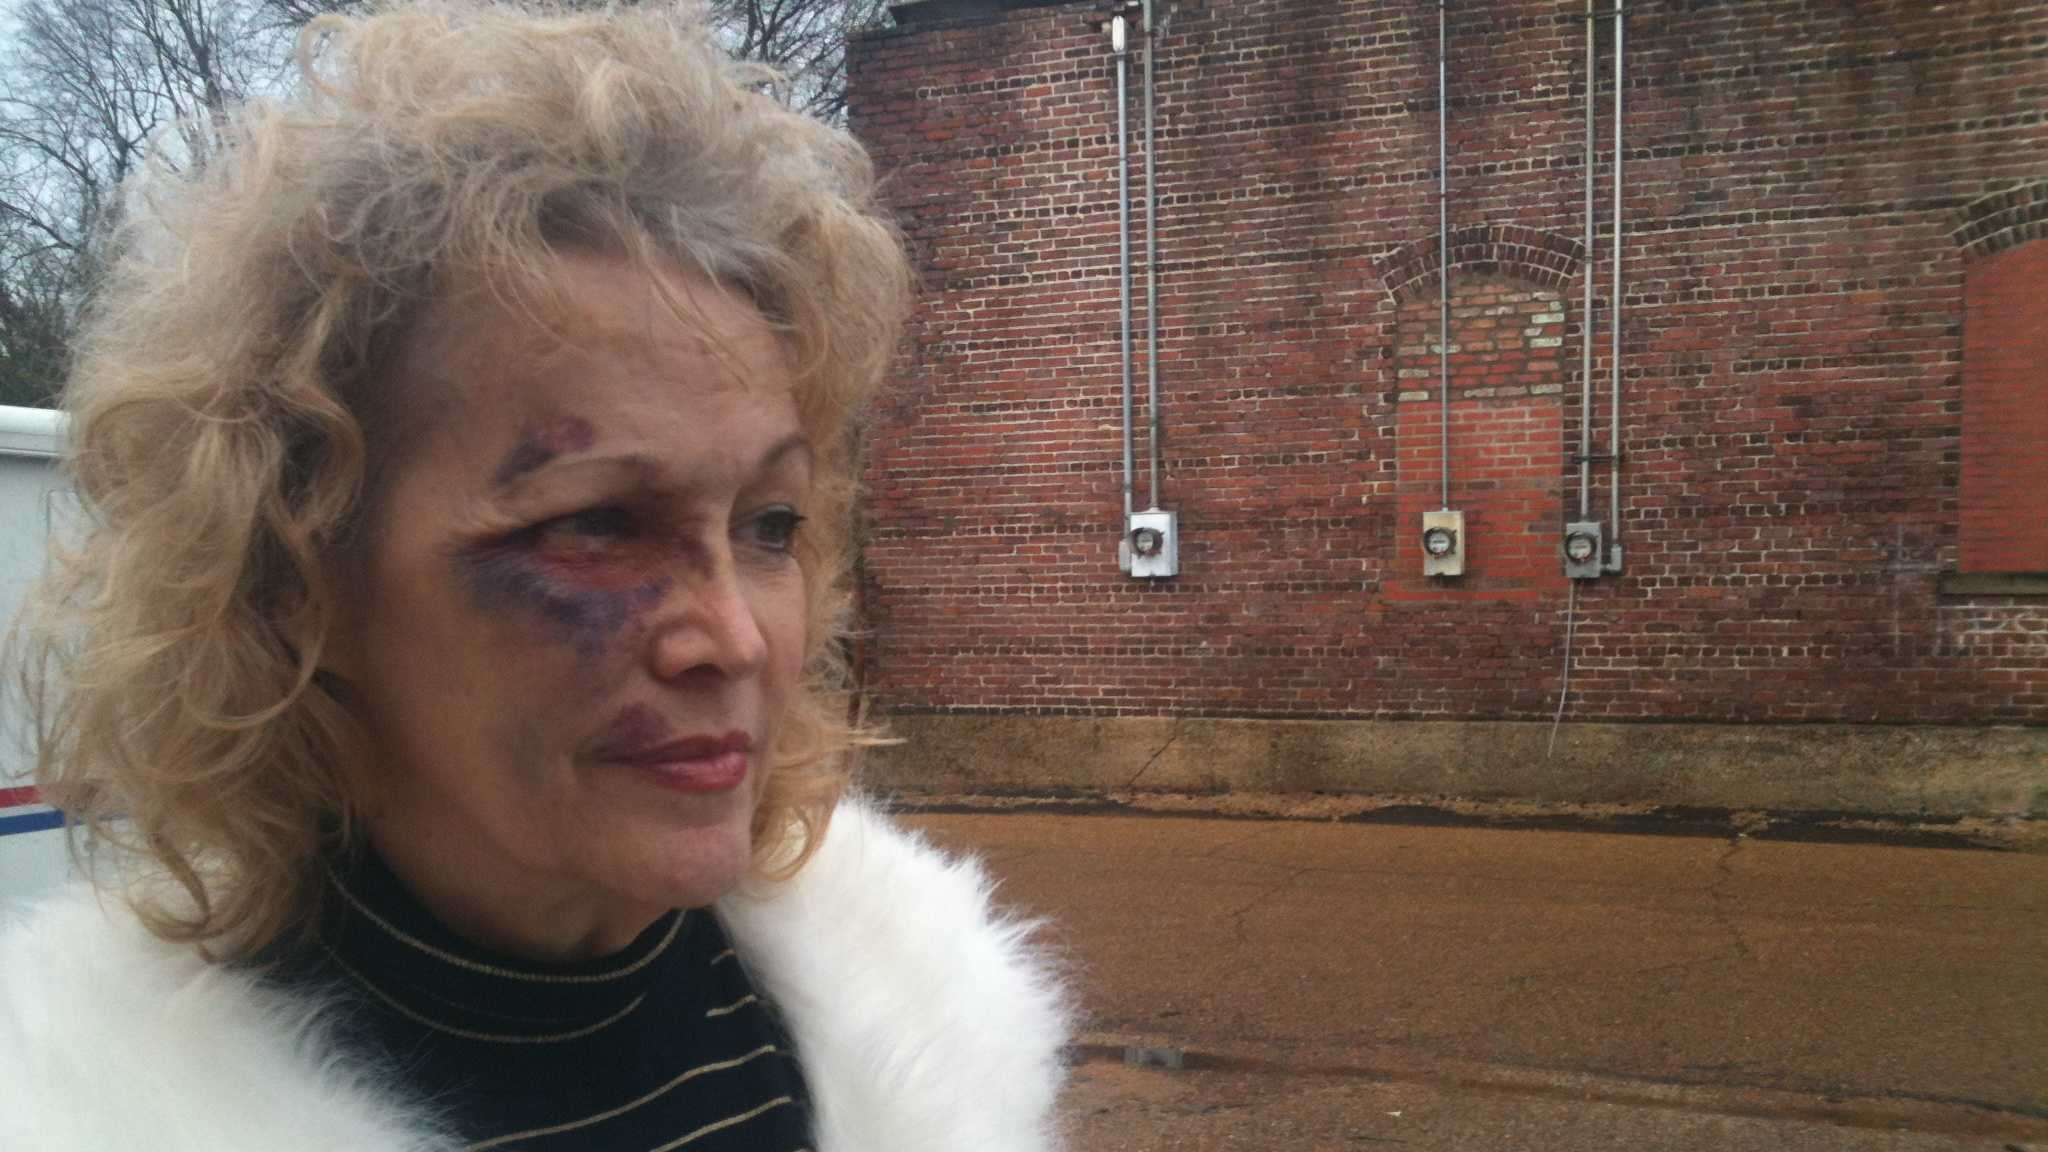 Charlotte Reeves says a mugger hit her several times in the face and stole her purse.